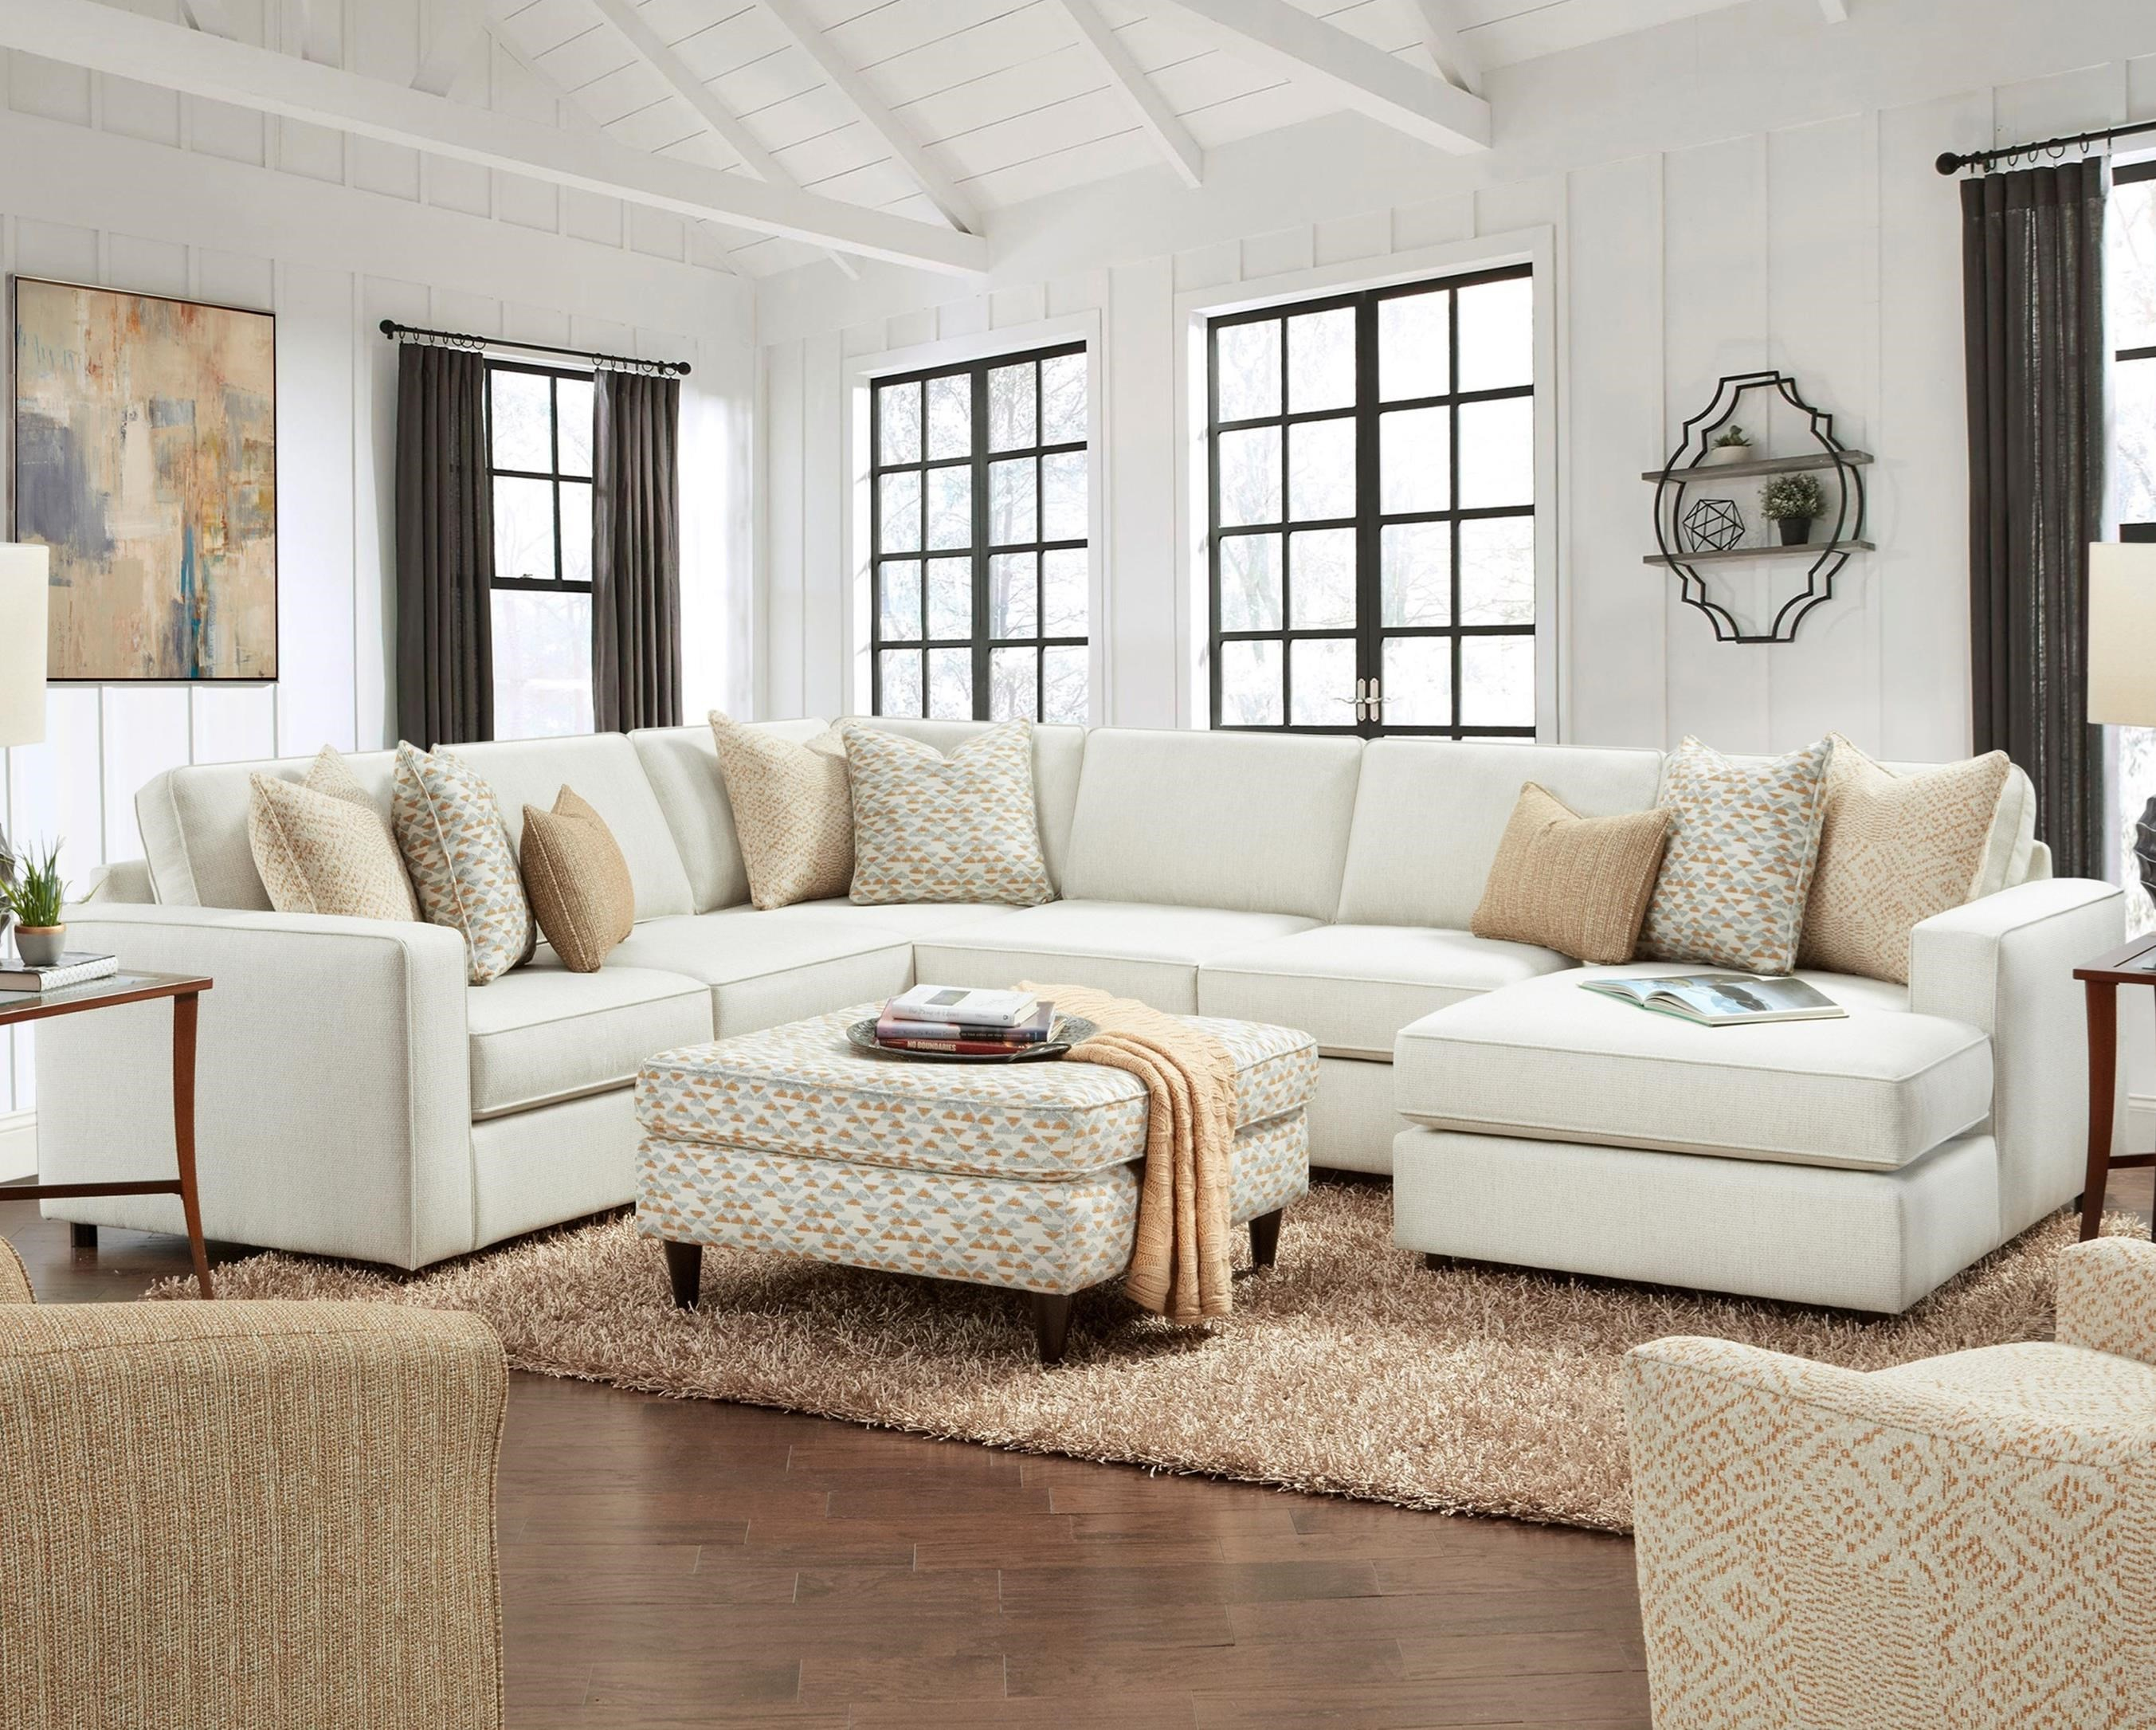 2061 4-Piece Sectional with Chaise by Fusion Furniture at Prime Brothers Furniture